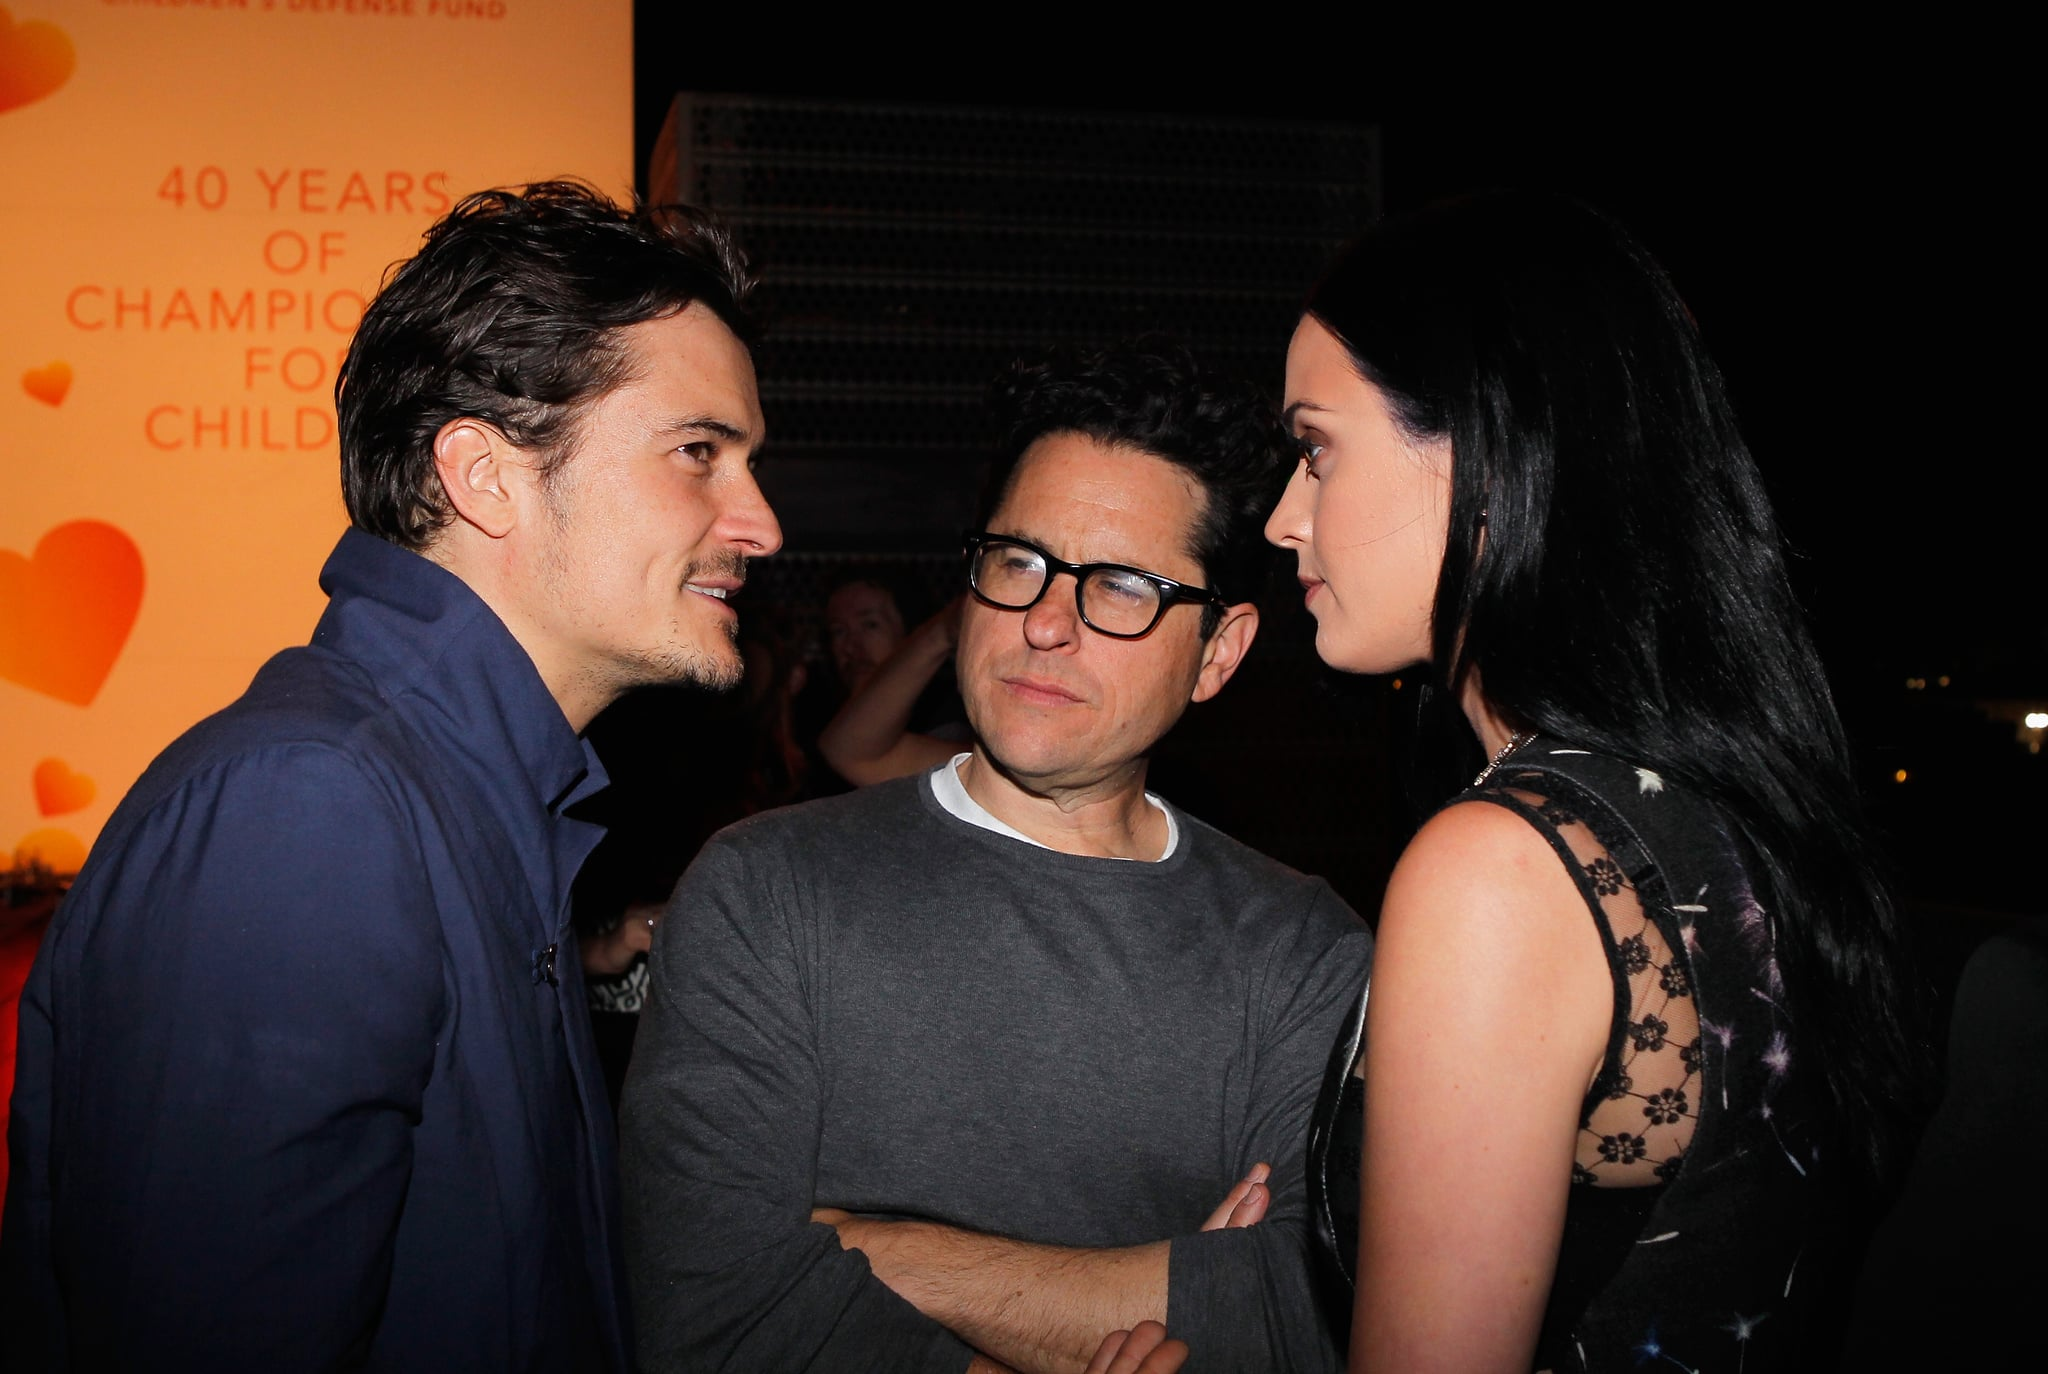 SANTA MONICA, CA - APRIL 10:  (l-R) Actor Orlando Bloom, host J.J. Abrams, and singer Katy Perry attend Coach's 3rd Annual Evening of Cocktails and Shopping to Benefit the Children's Defence Fund hosted by Katie McGrath, J.J. Abrams and Bryan Burk at Bad Robot on April 10, 2013 in Santa Monica, California.  (Photo by Donato Sardella/Getty Images for Coach)